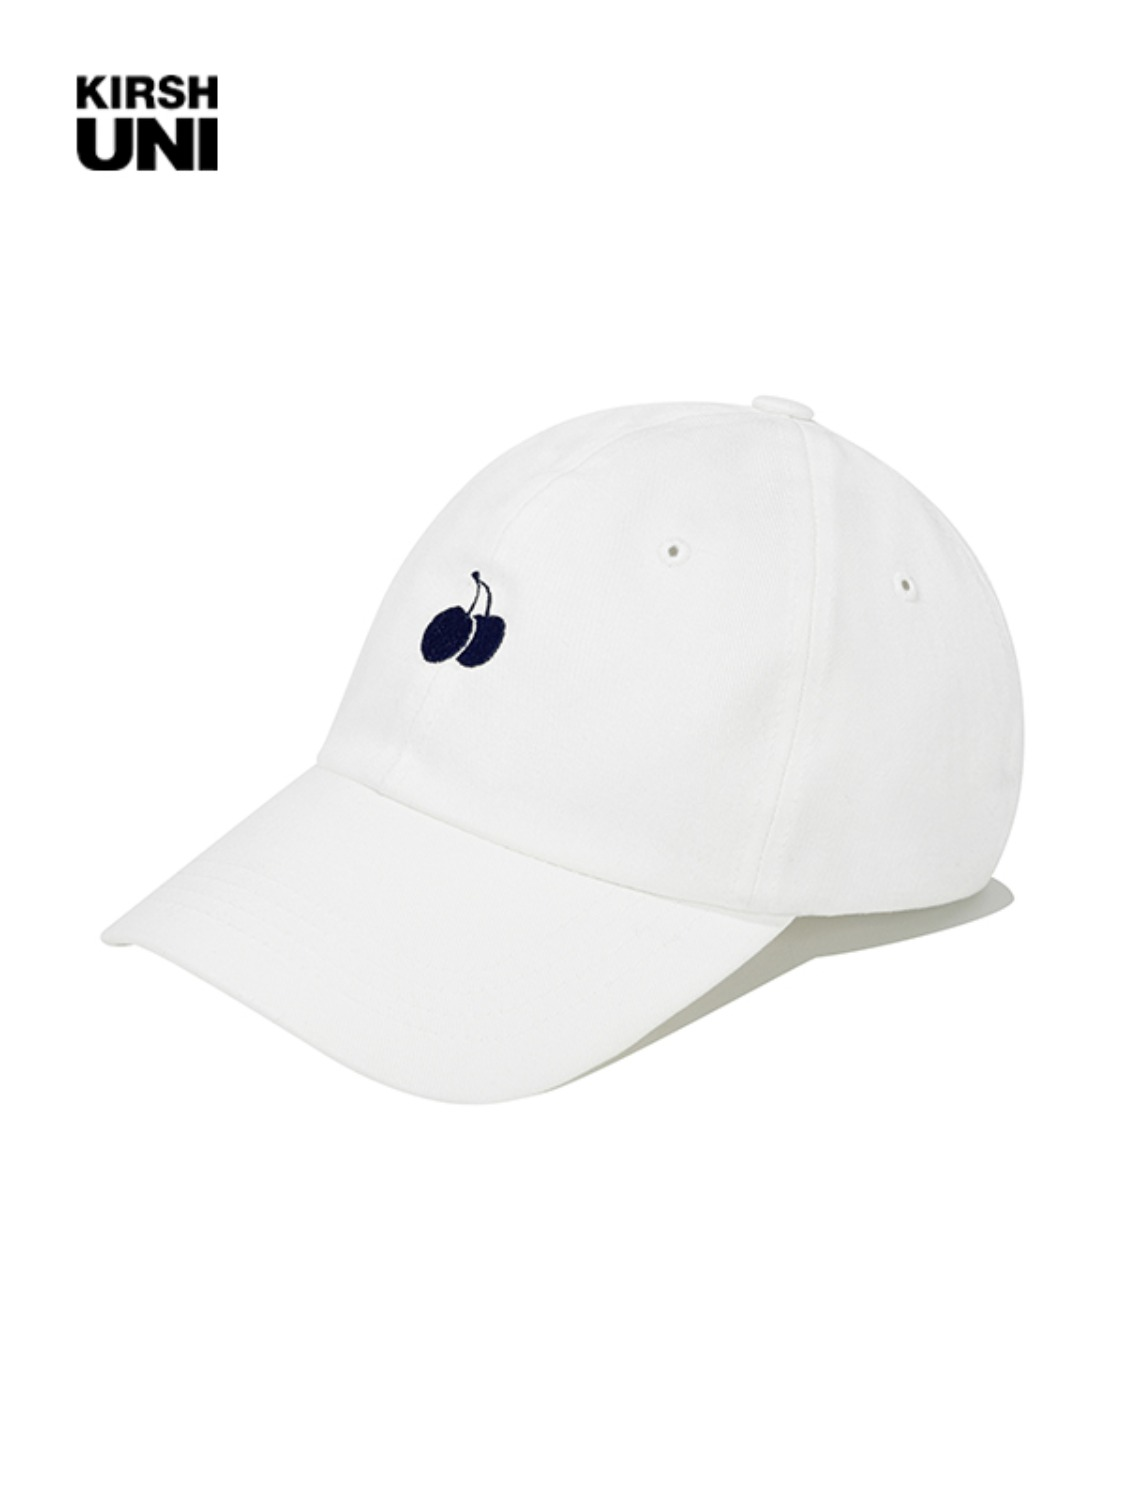 (2월 5일 예약발송)UNI SMALL CHERRY LOGO BALLCAP KS [WHITE]